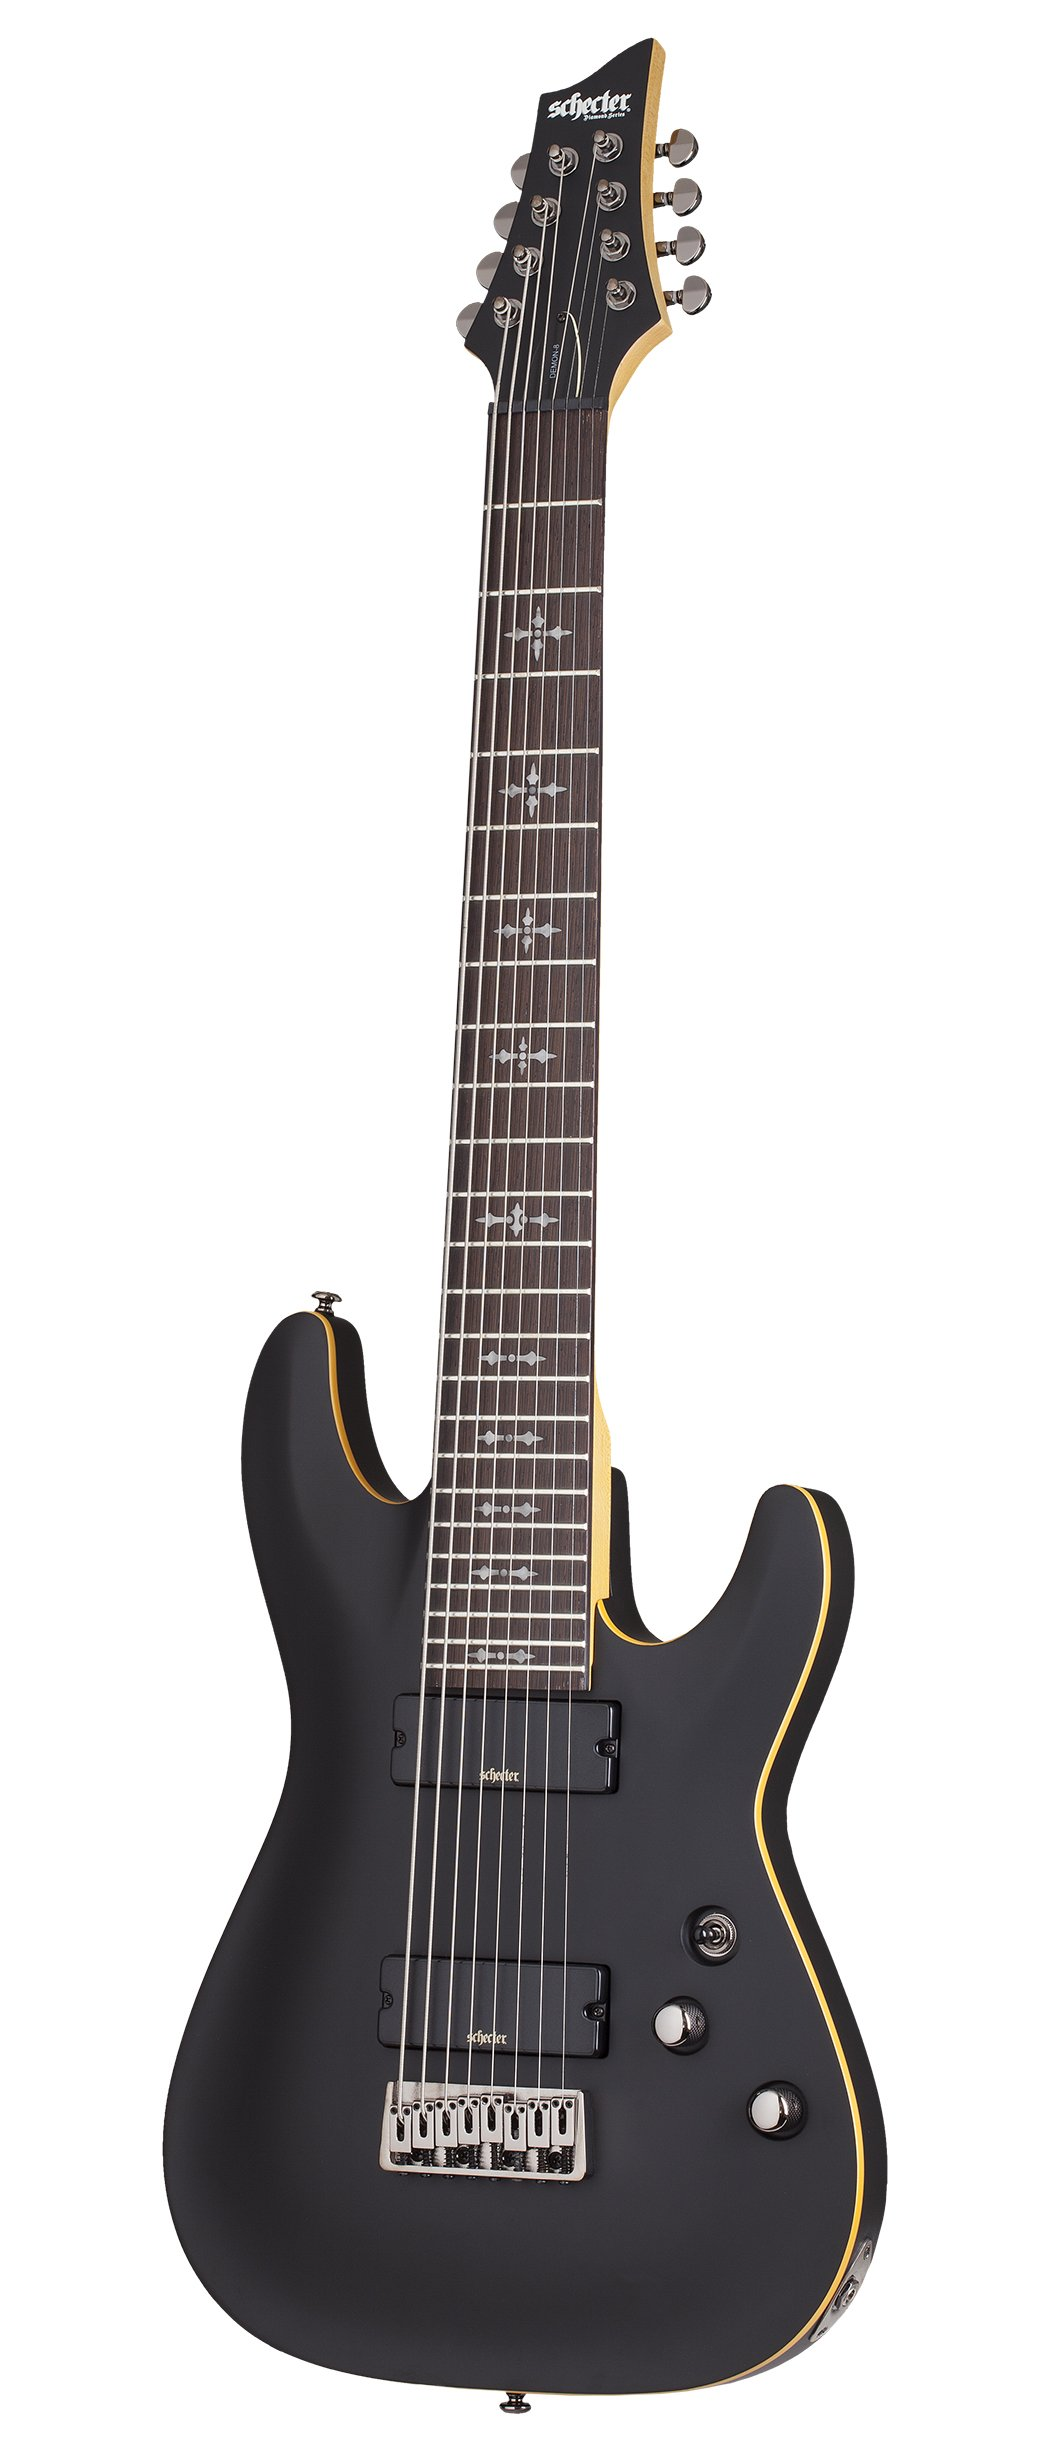 Cheap Schecter 8 String Solid-Body Electric Guitar Aged Black Satin (3663) Black Friday & Cyber Monday 2019